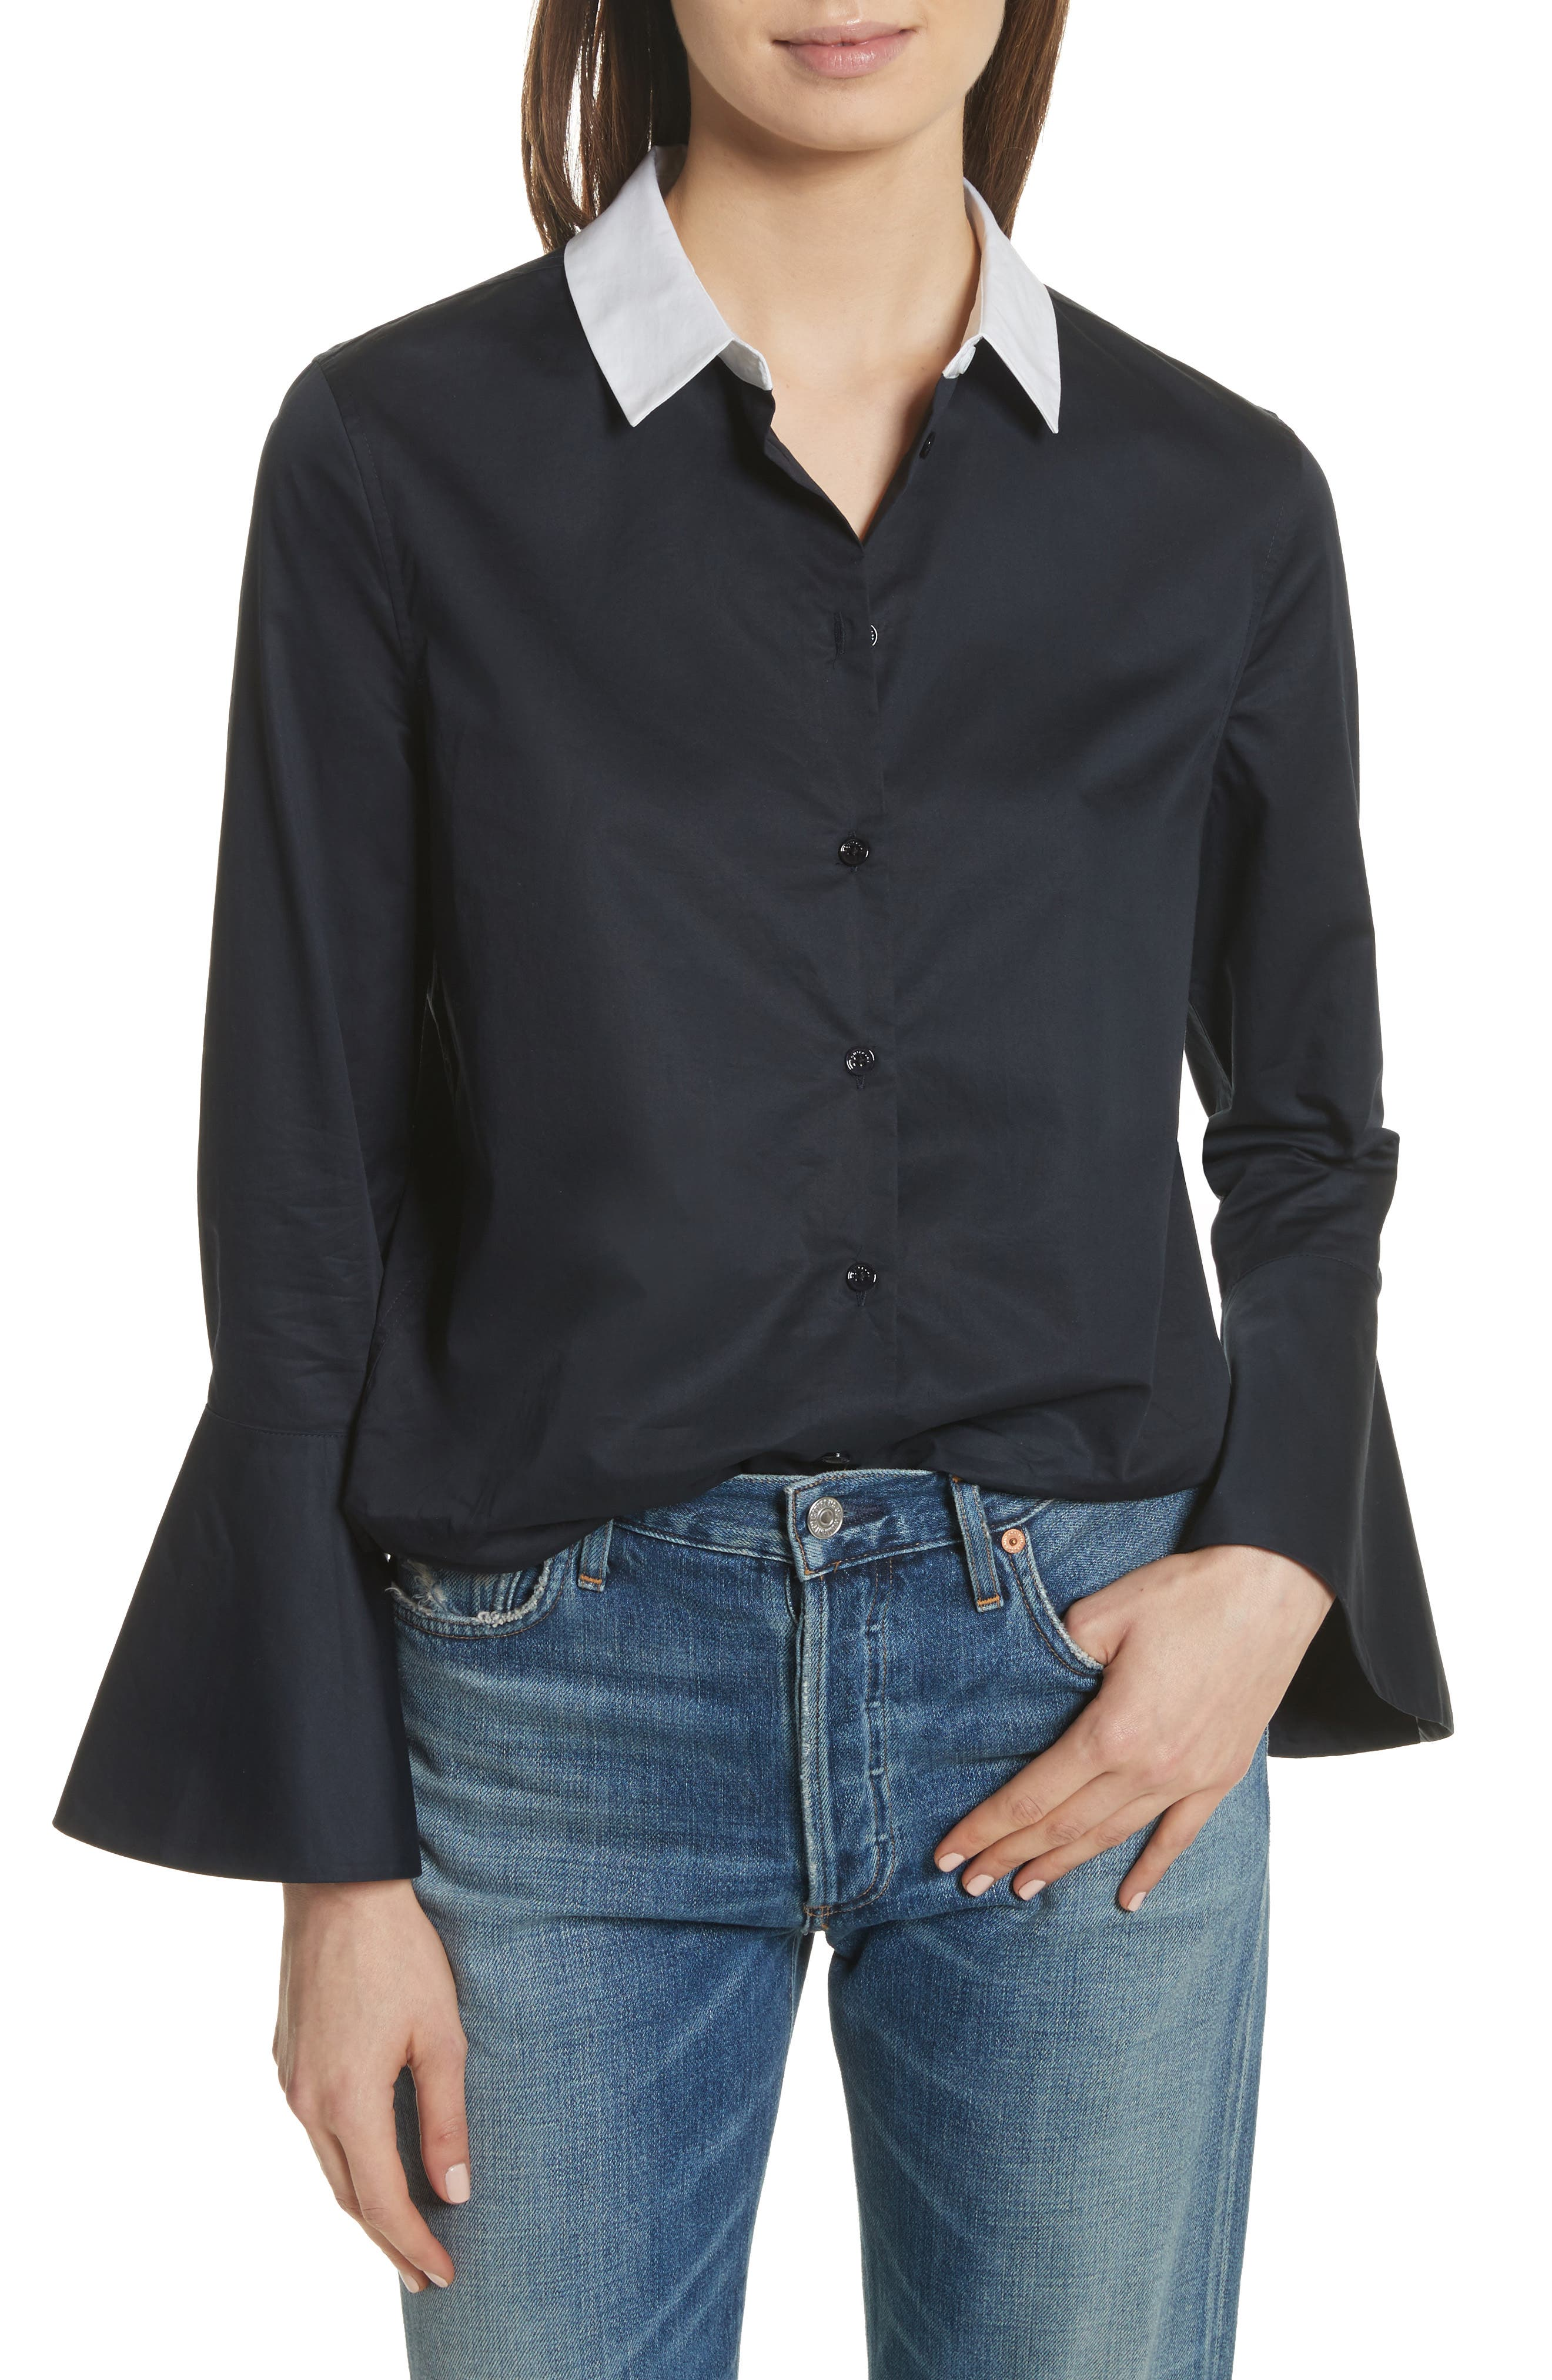 Alternate Image 1 Selected - Equipment Darla Bell Cuff Shirt